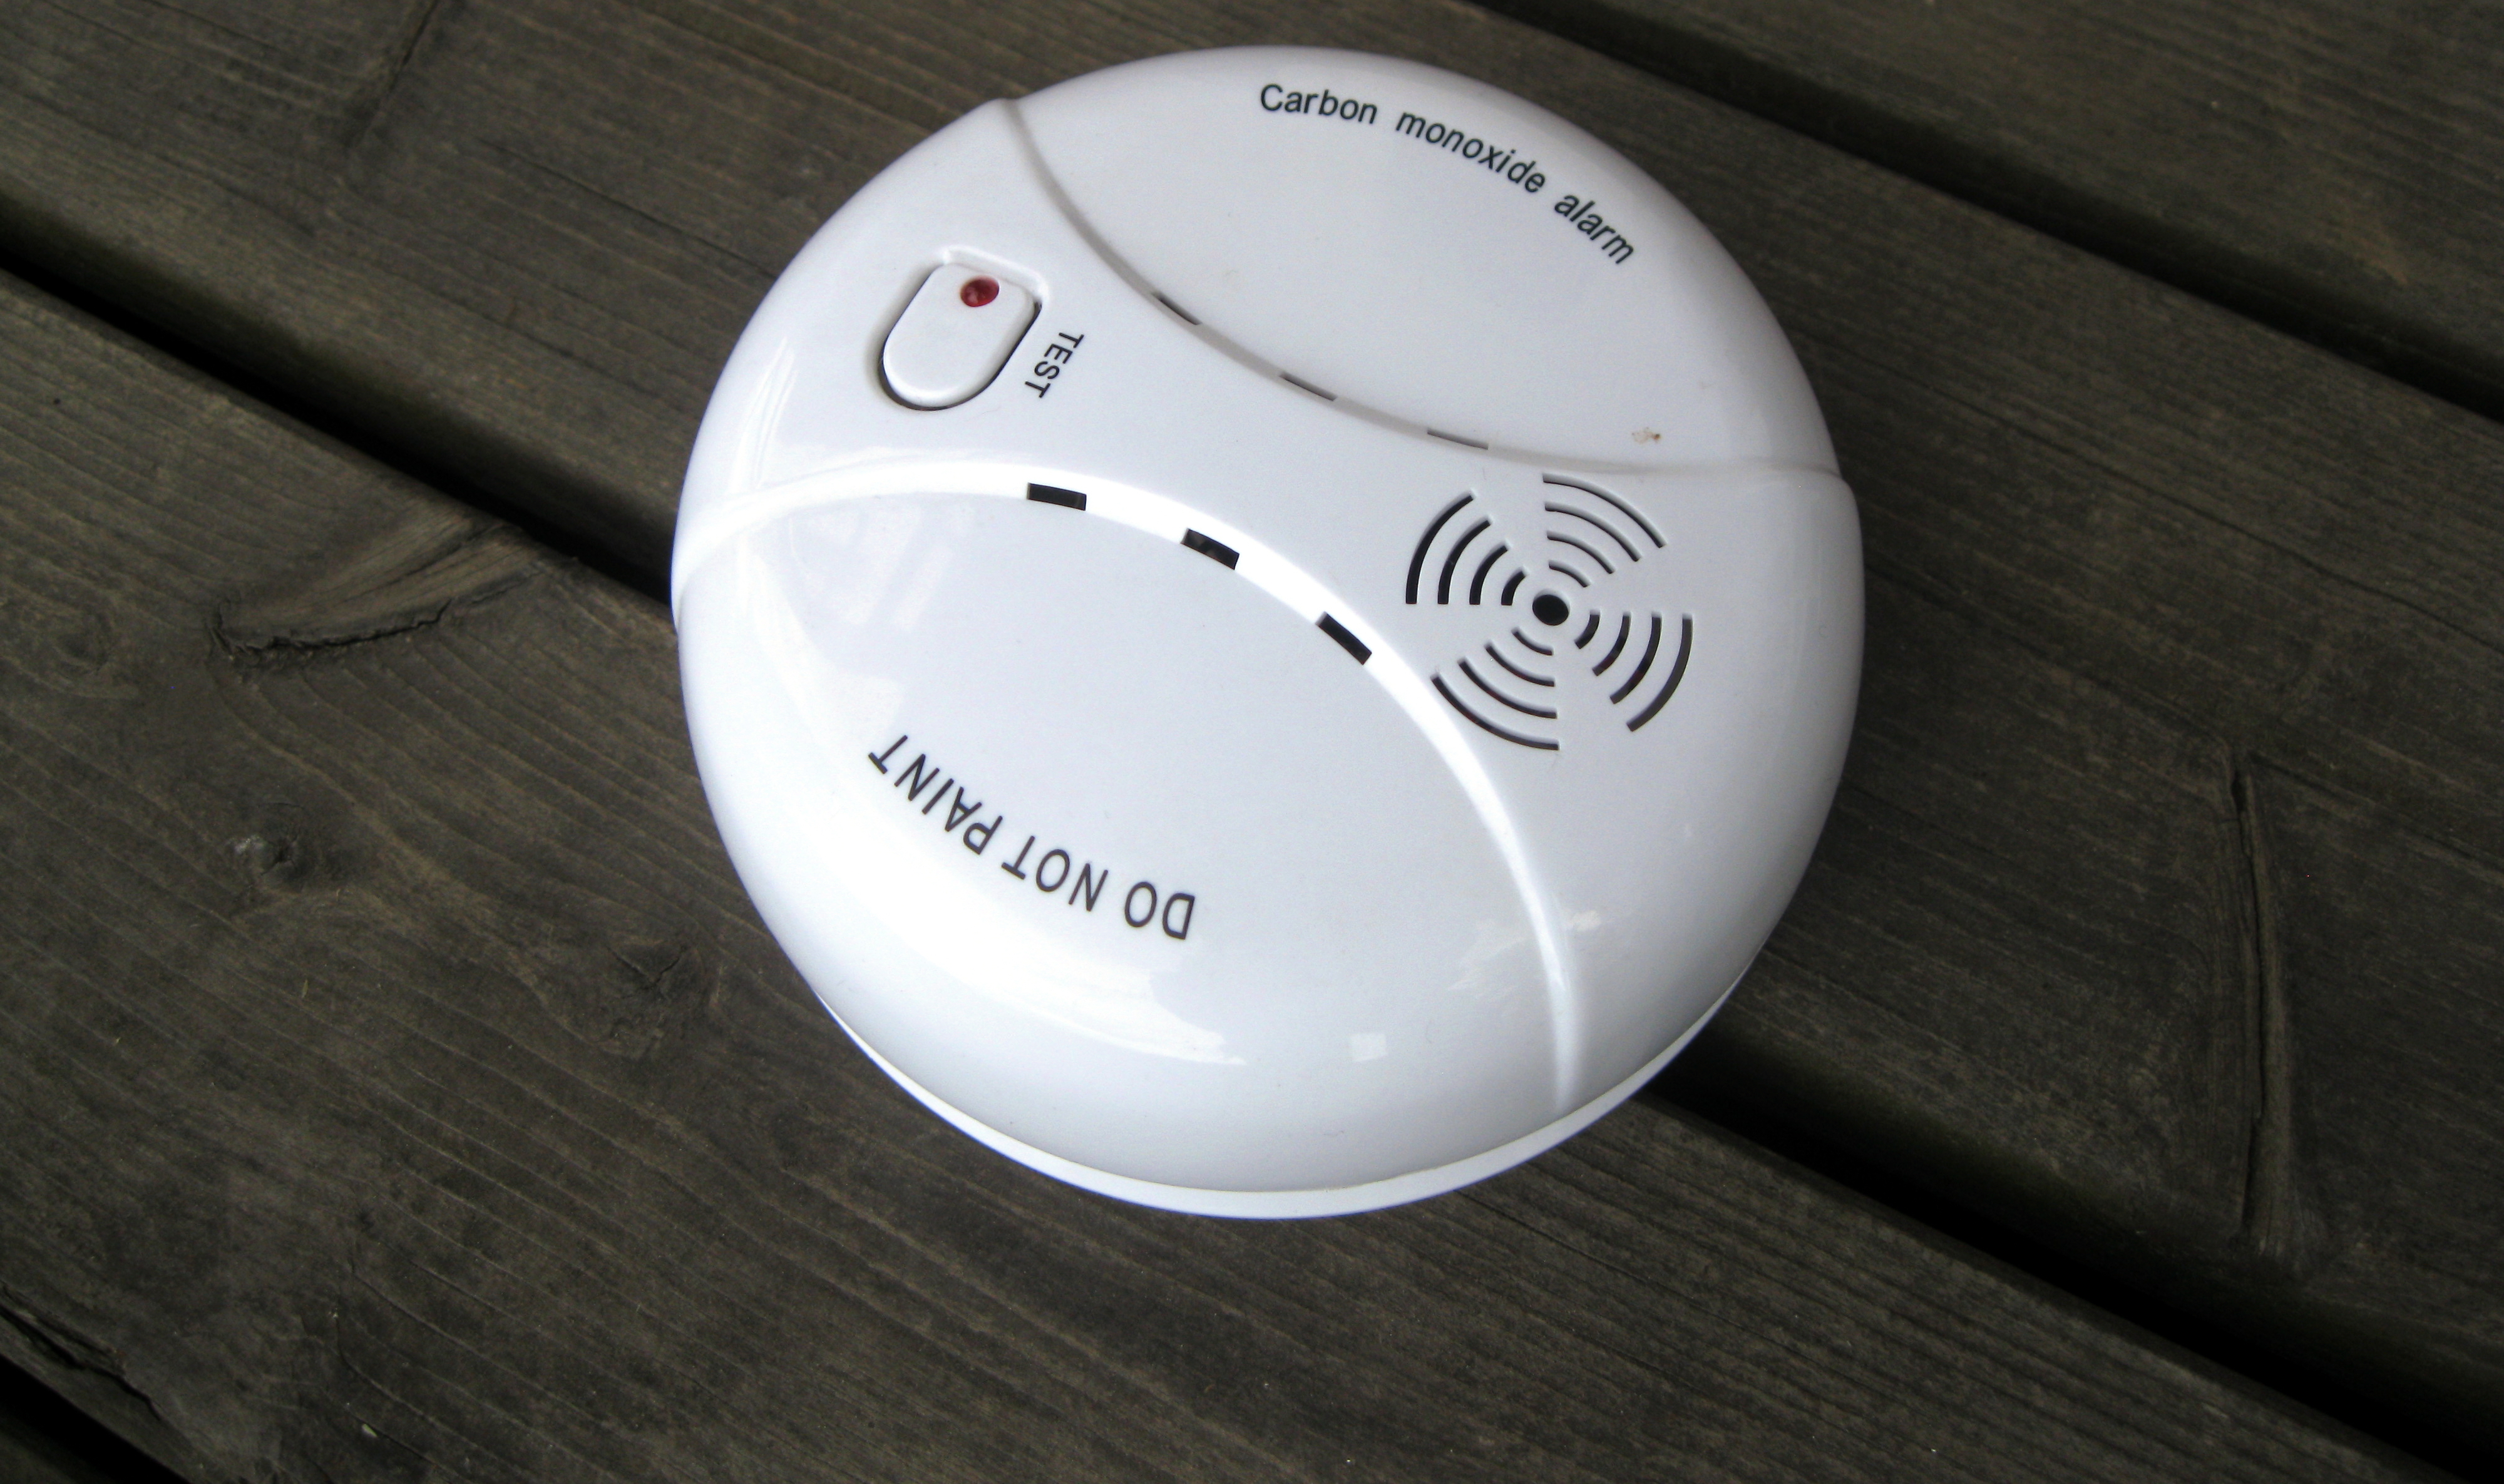 US House approves bill requiring carbon monoxide detectors in public housing